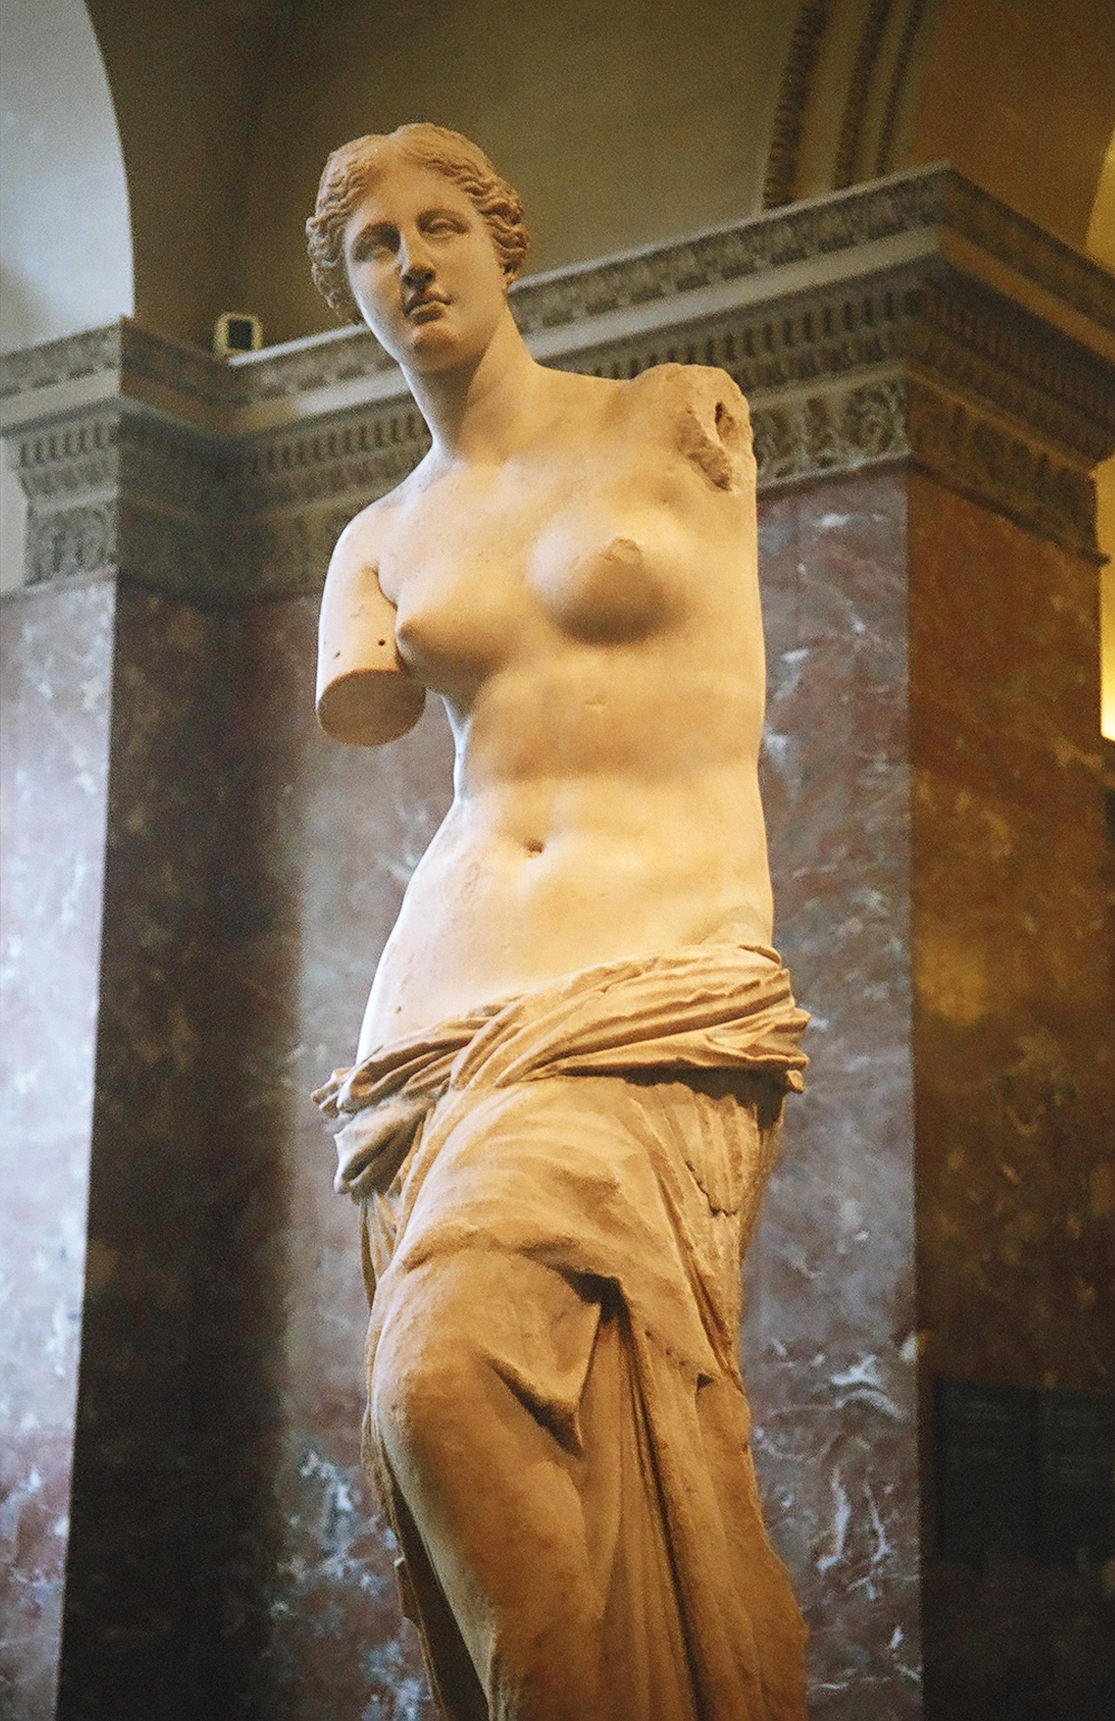 Venus de Milo is an ancient Greek statue and one of the most famous works of ancient Greek sculpture